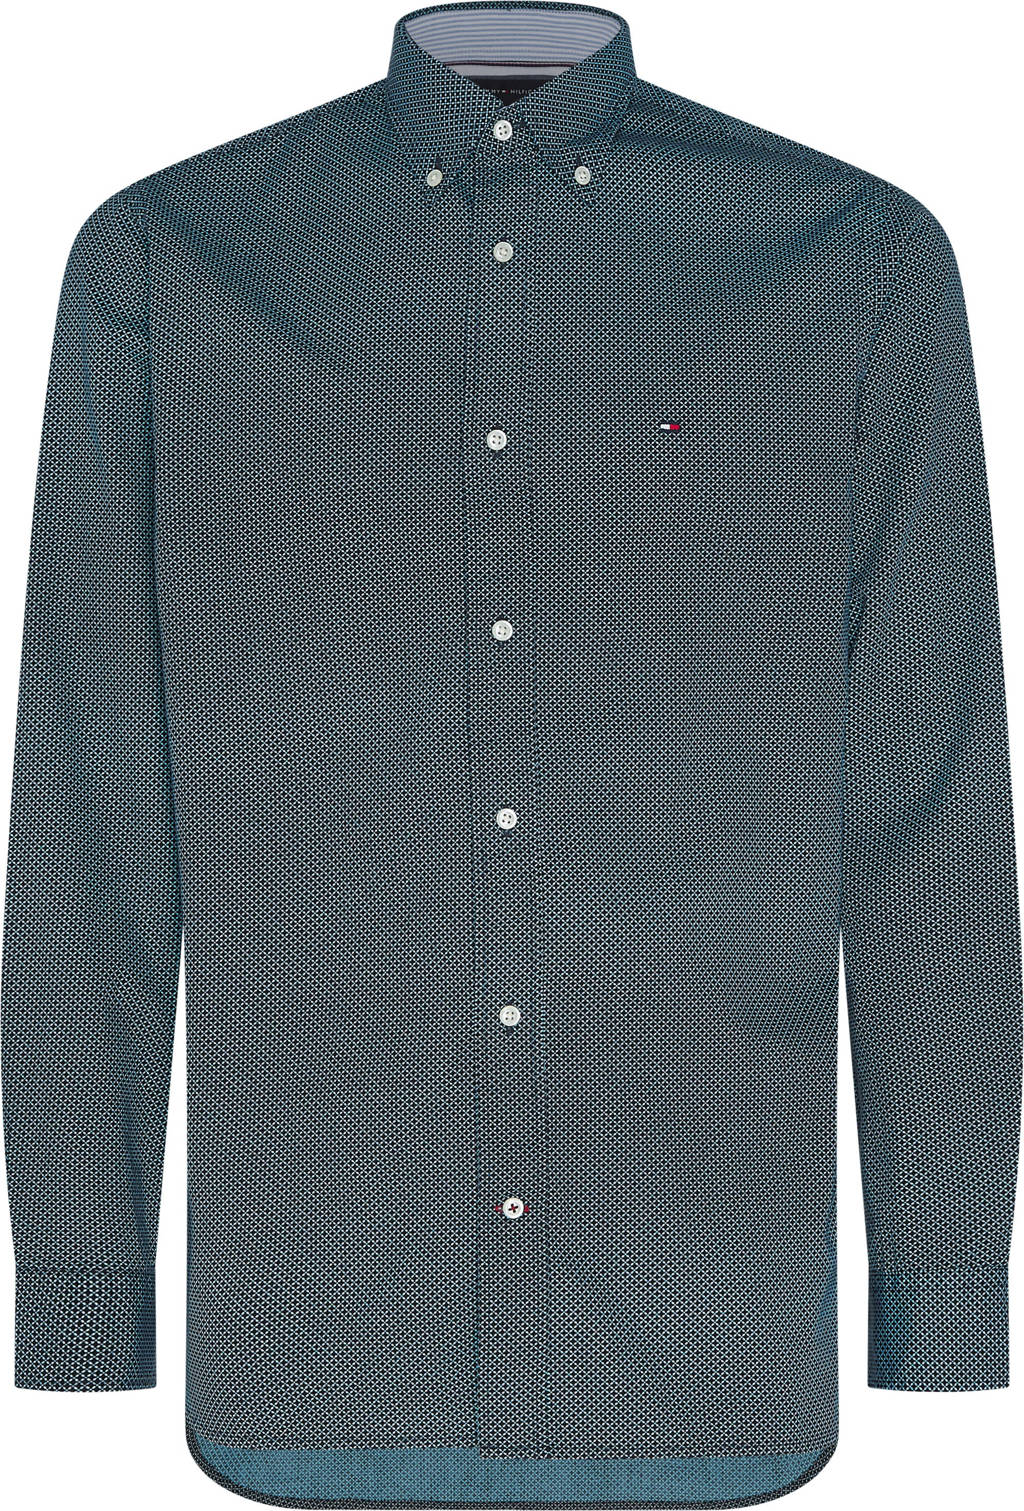 Tommy Hilfiger regular fit overhemd met all over print donkerblauw/turquoise, Donkerblauw/turquoise